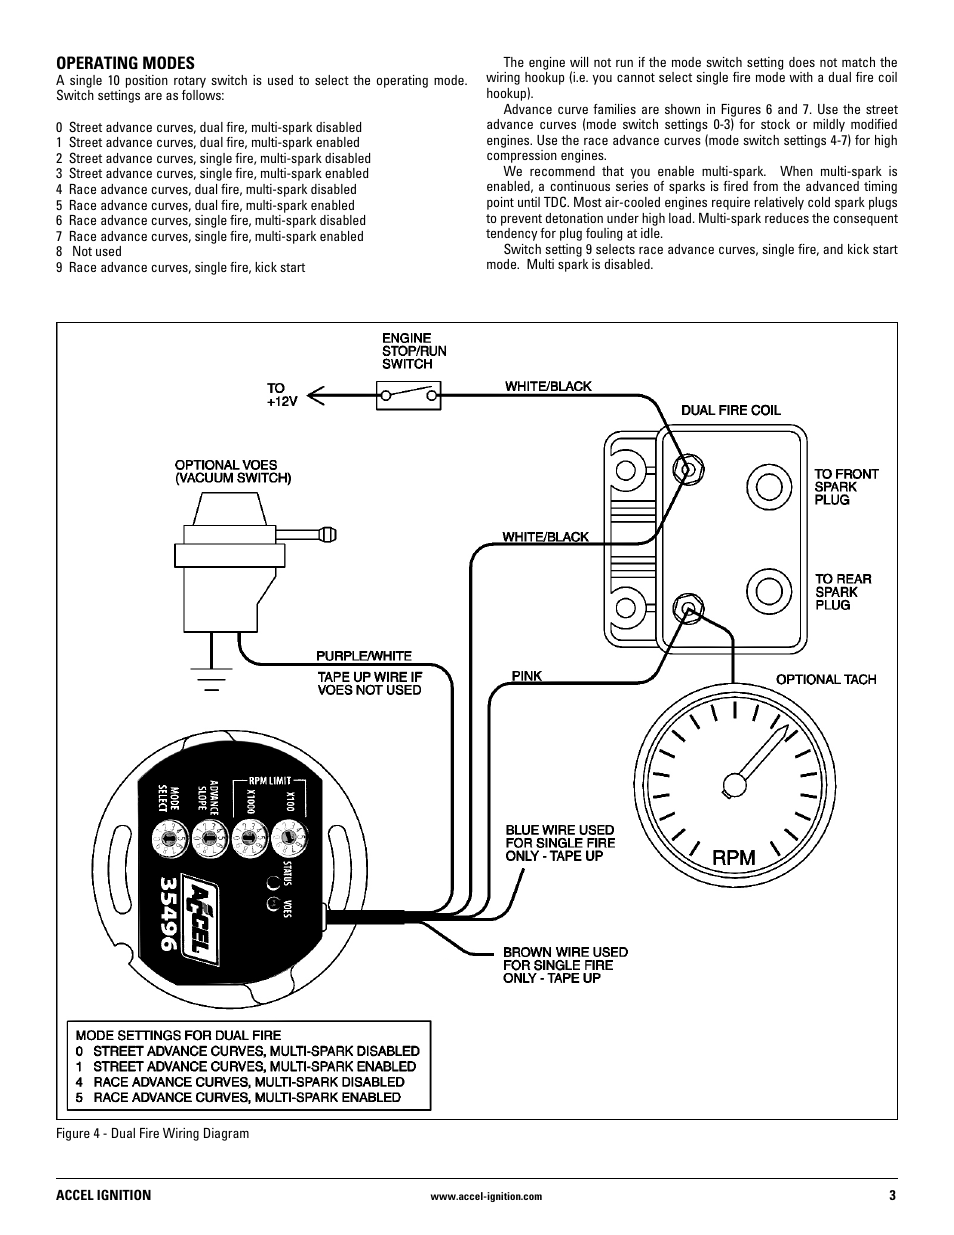 mallory ignition accel ignition 35496 page3?resize\\\\\\\\\\\\\\\=665%2C861 mallory unilite wiring diagram tamahuproject org unilite wiring diagram at aneh.co